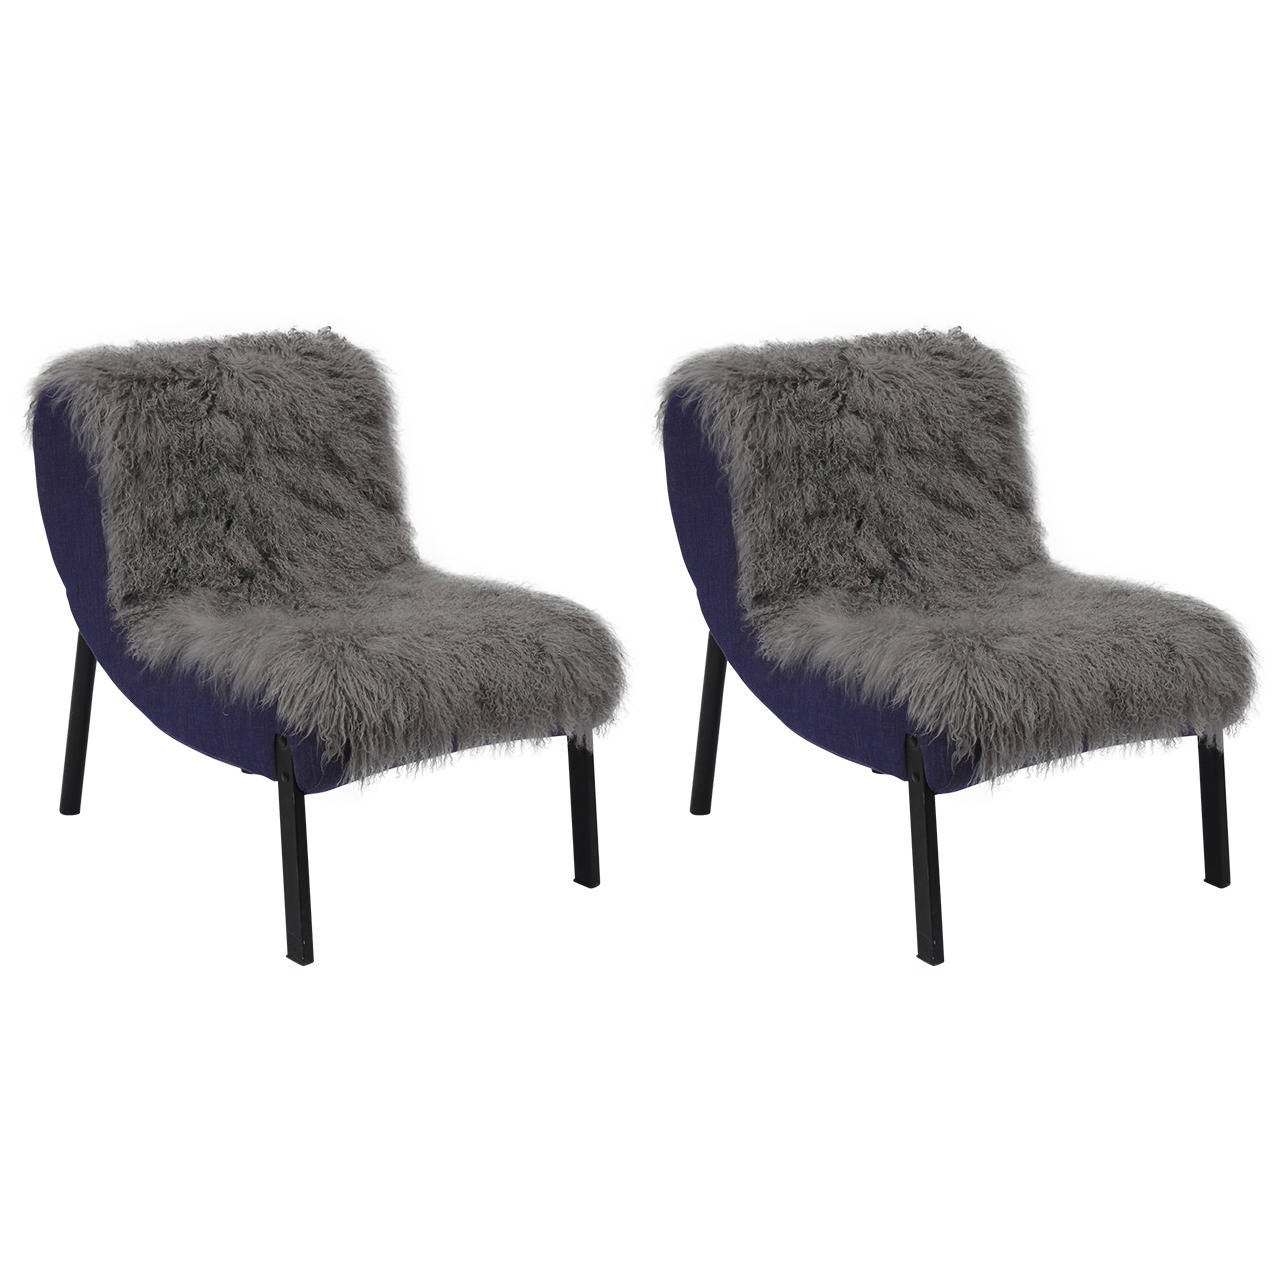 Pair of Rare Slipper Chairs by Christian Biecher for Addform